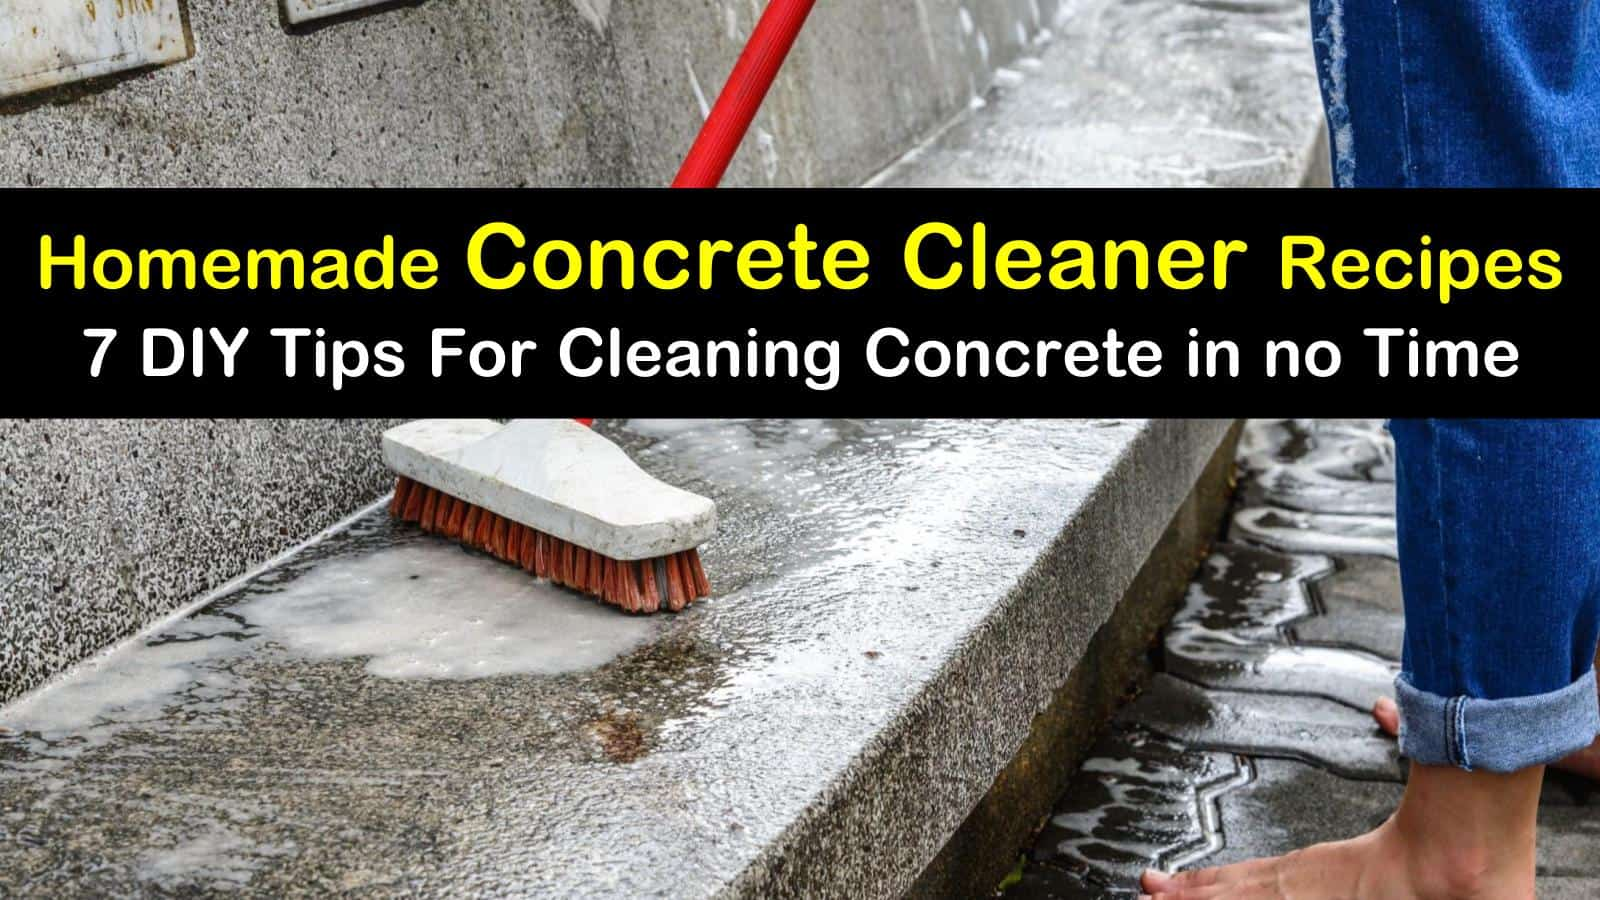 Homemade Concrete Cleaner Recipes 7 Diy Tips For Cleaning